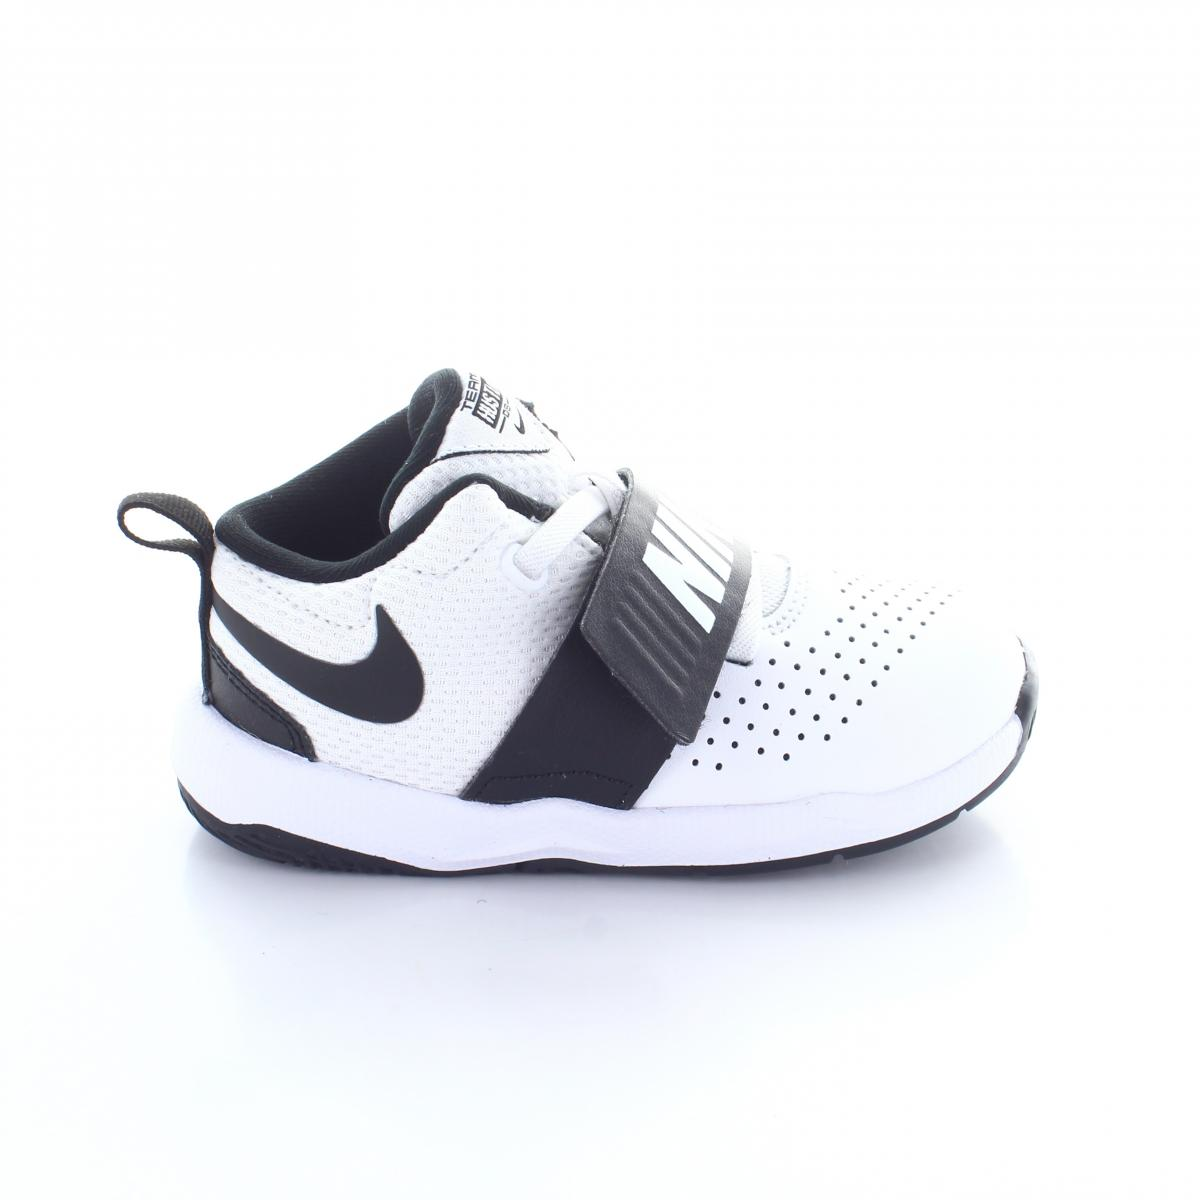 9add181b ... Tenis para Niño Nike 881943-100 Color Blanco ...